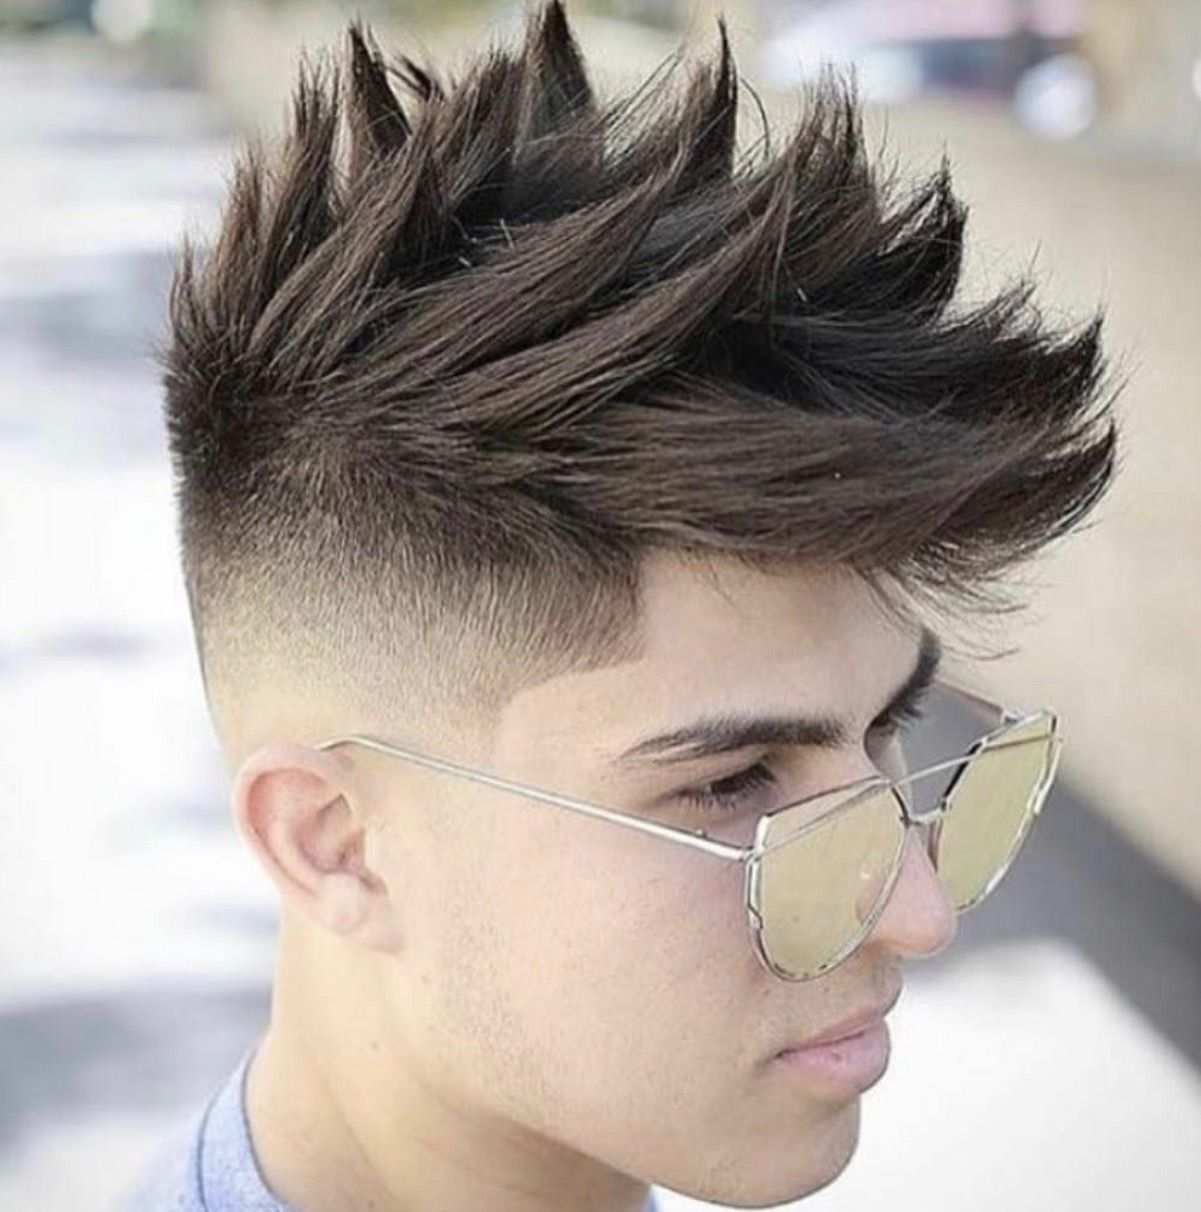 Hairstyle pin board pinterest pin boards